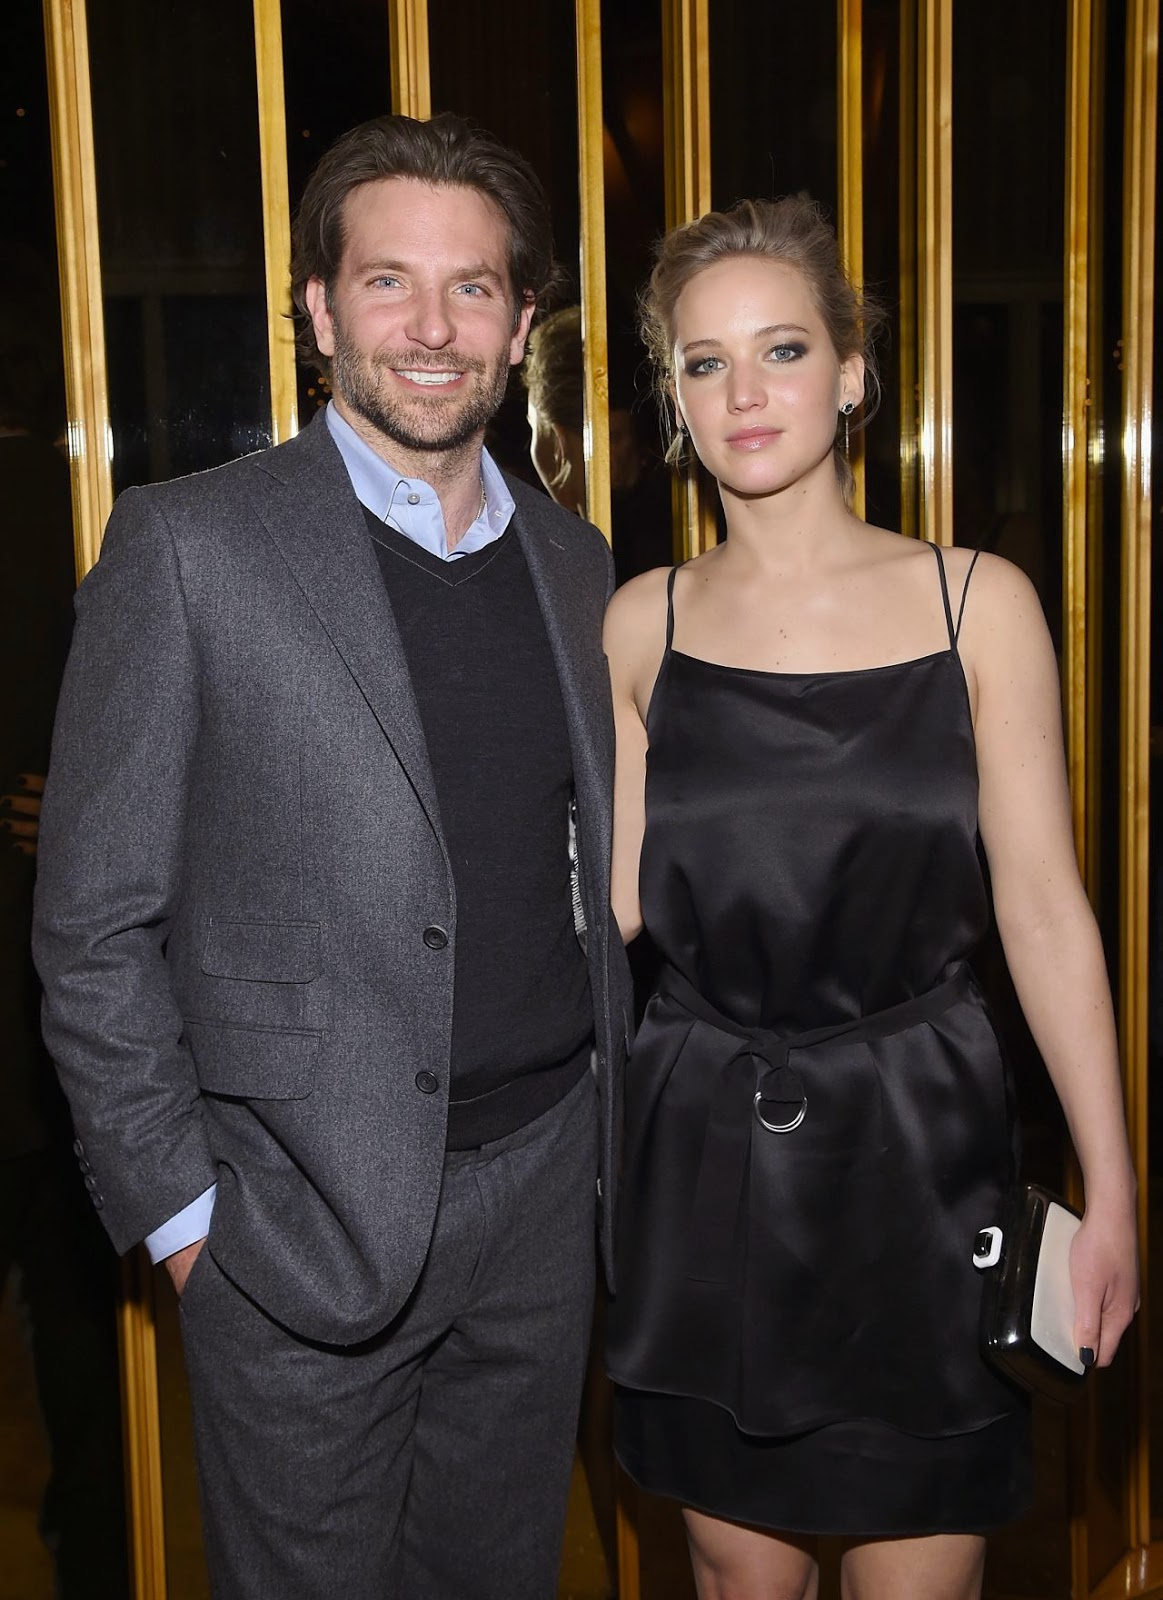 Jennifer Lawrence and Bradley Cooper at the 'Serena' After-Party in New York